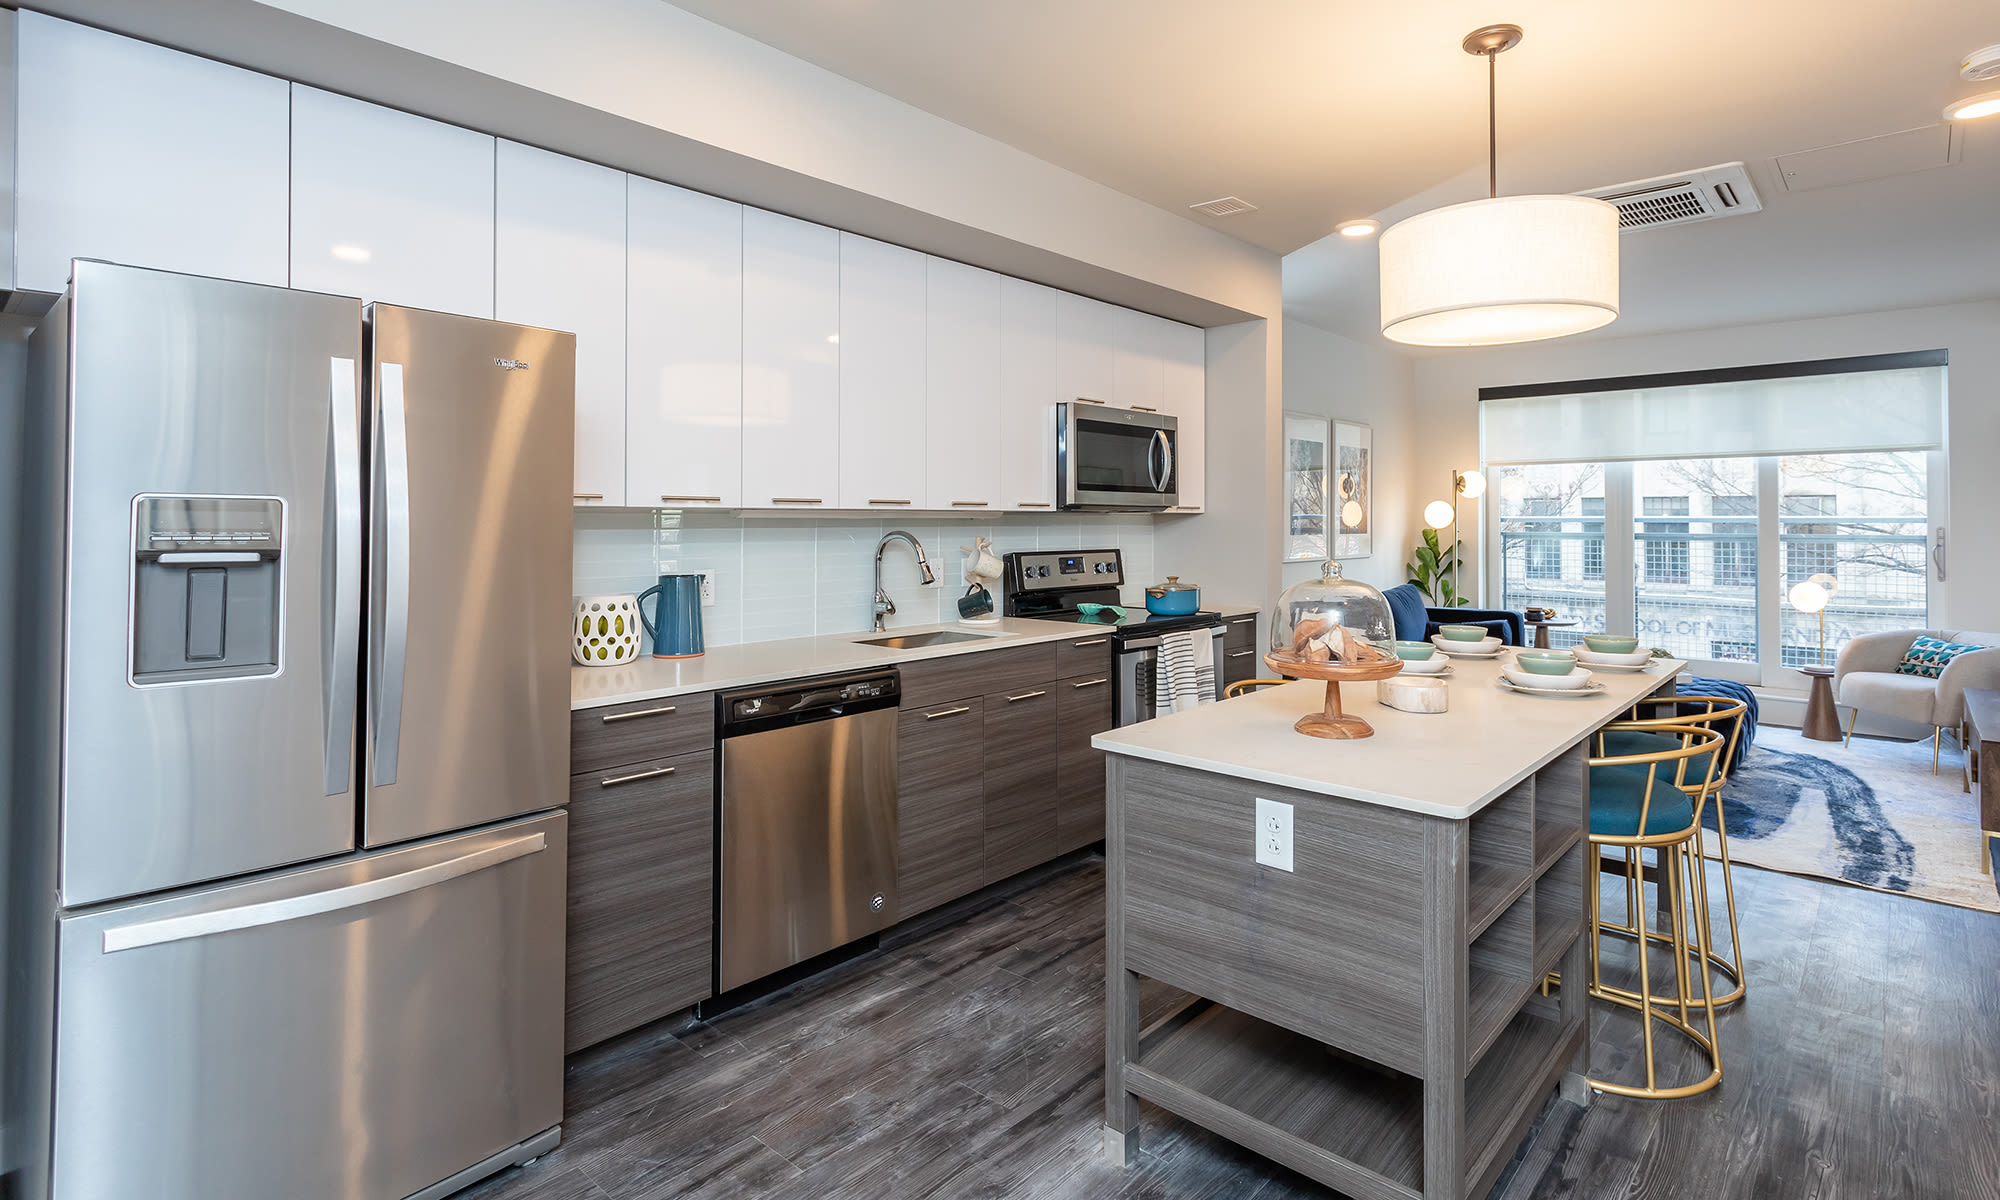 Luxury kitchen at apartments in Ithaca, New York